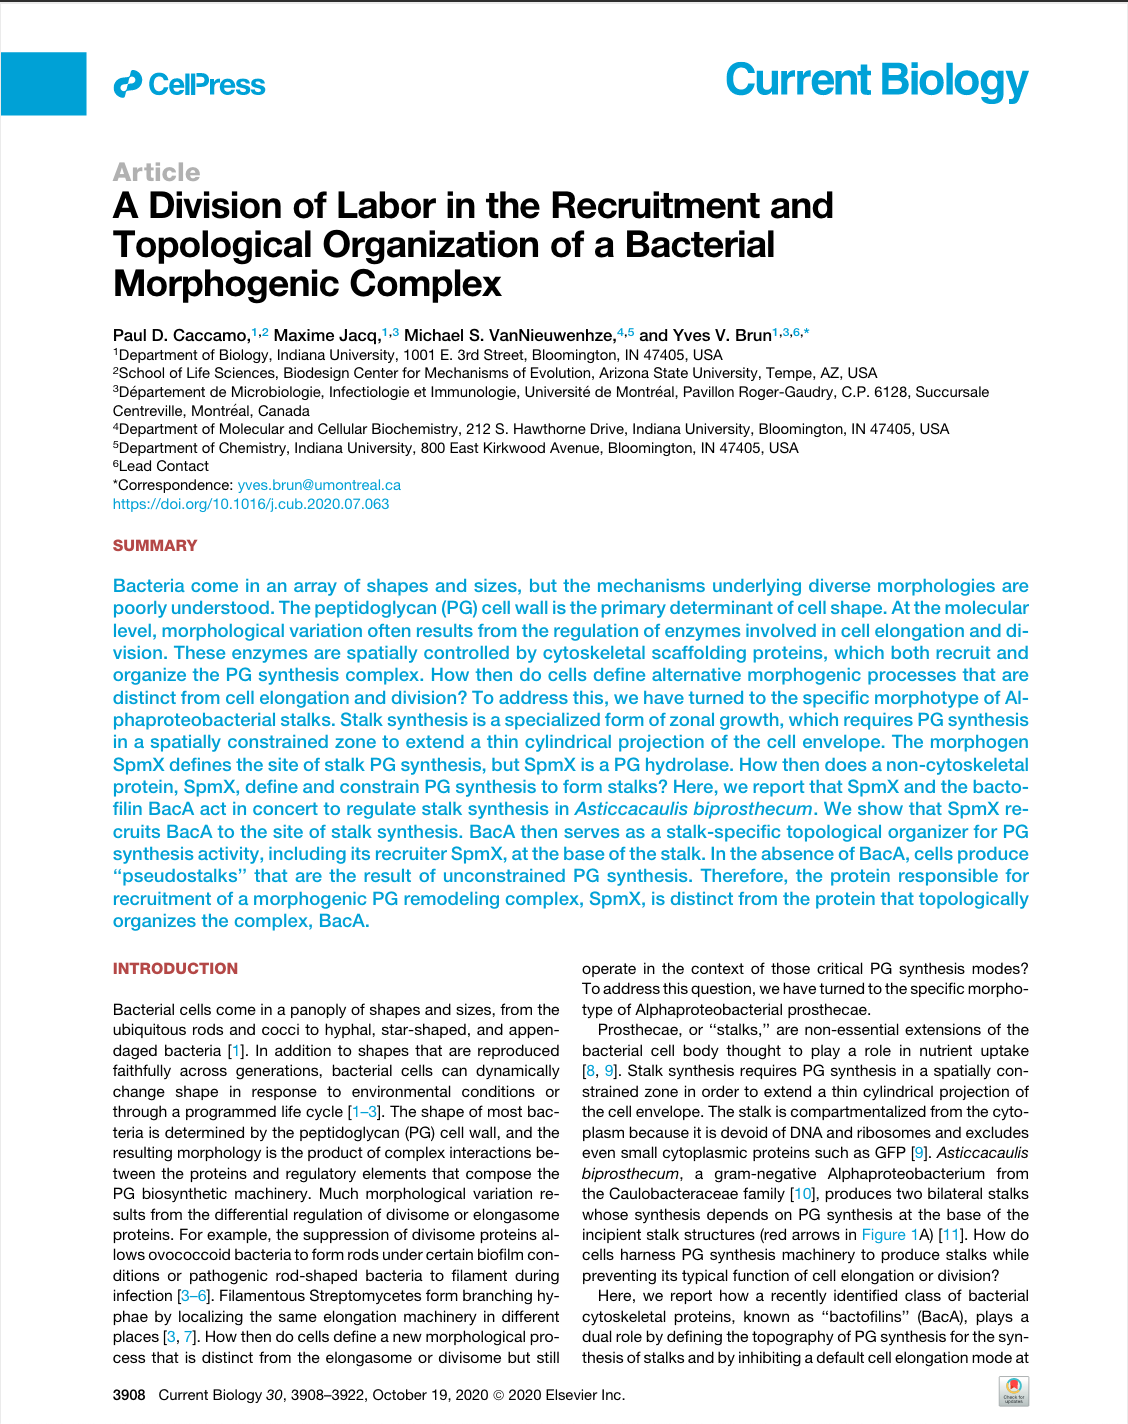 A Division of Labor in the Recruitment and Topological Organization of a Bacterial Morphogenic Complex